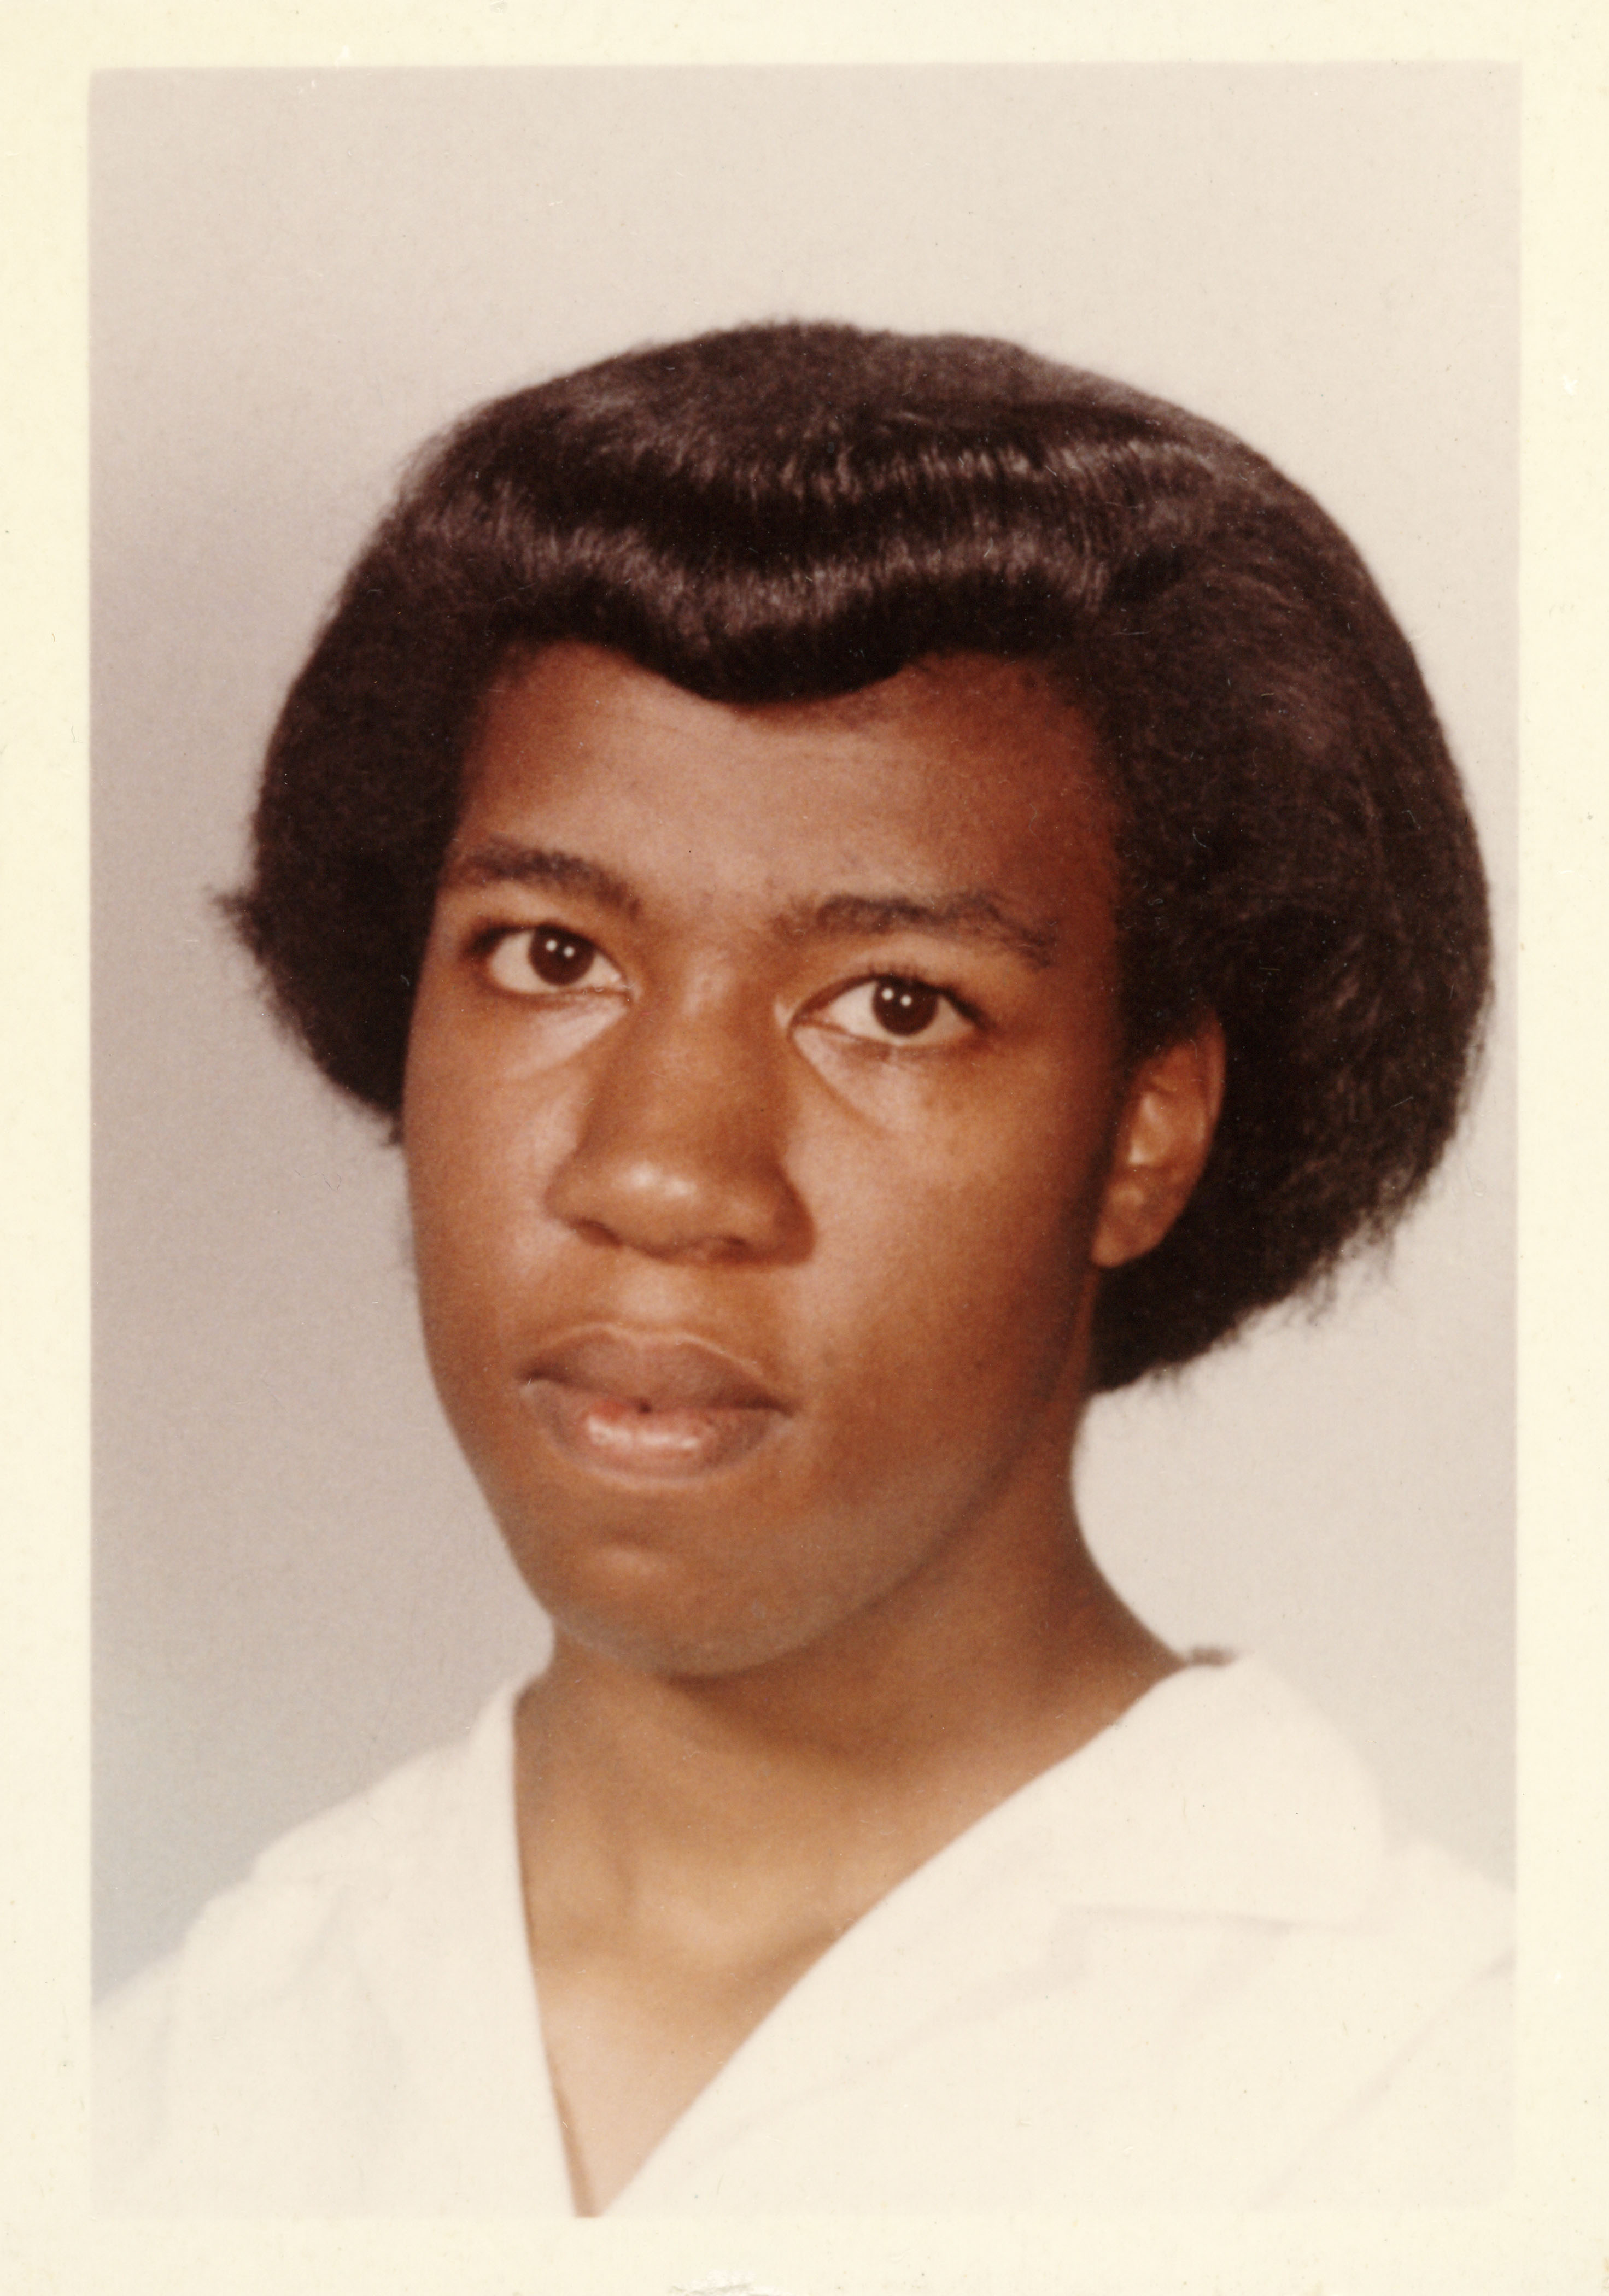 School photograph of Octavia E. Butler, ca. 1962. The Huntington Library, Art Collections, and Botanical Gardens.